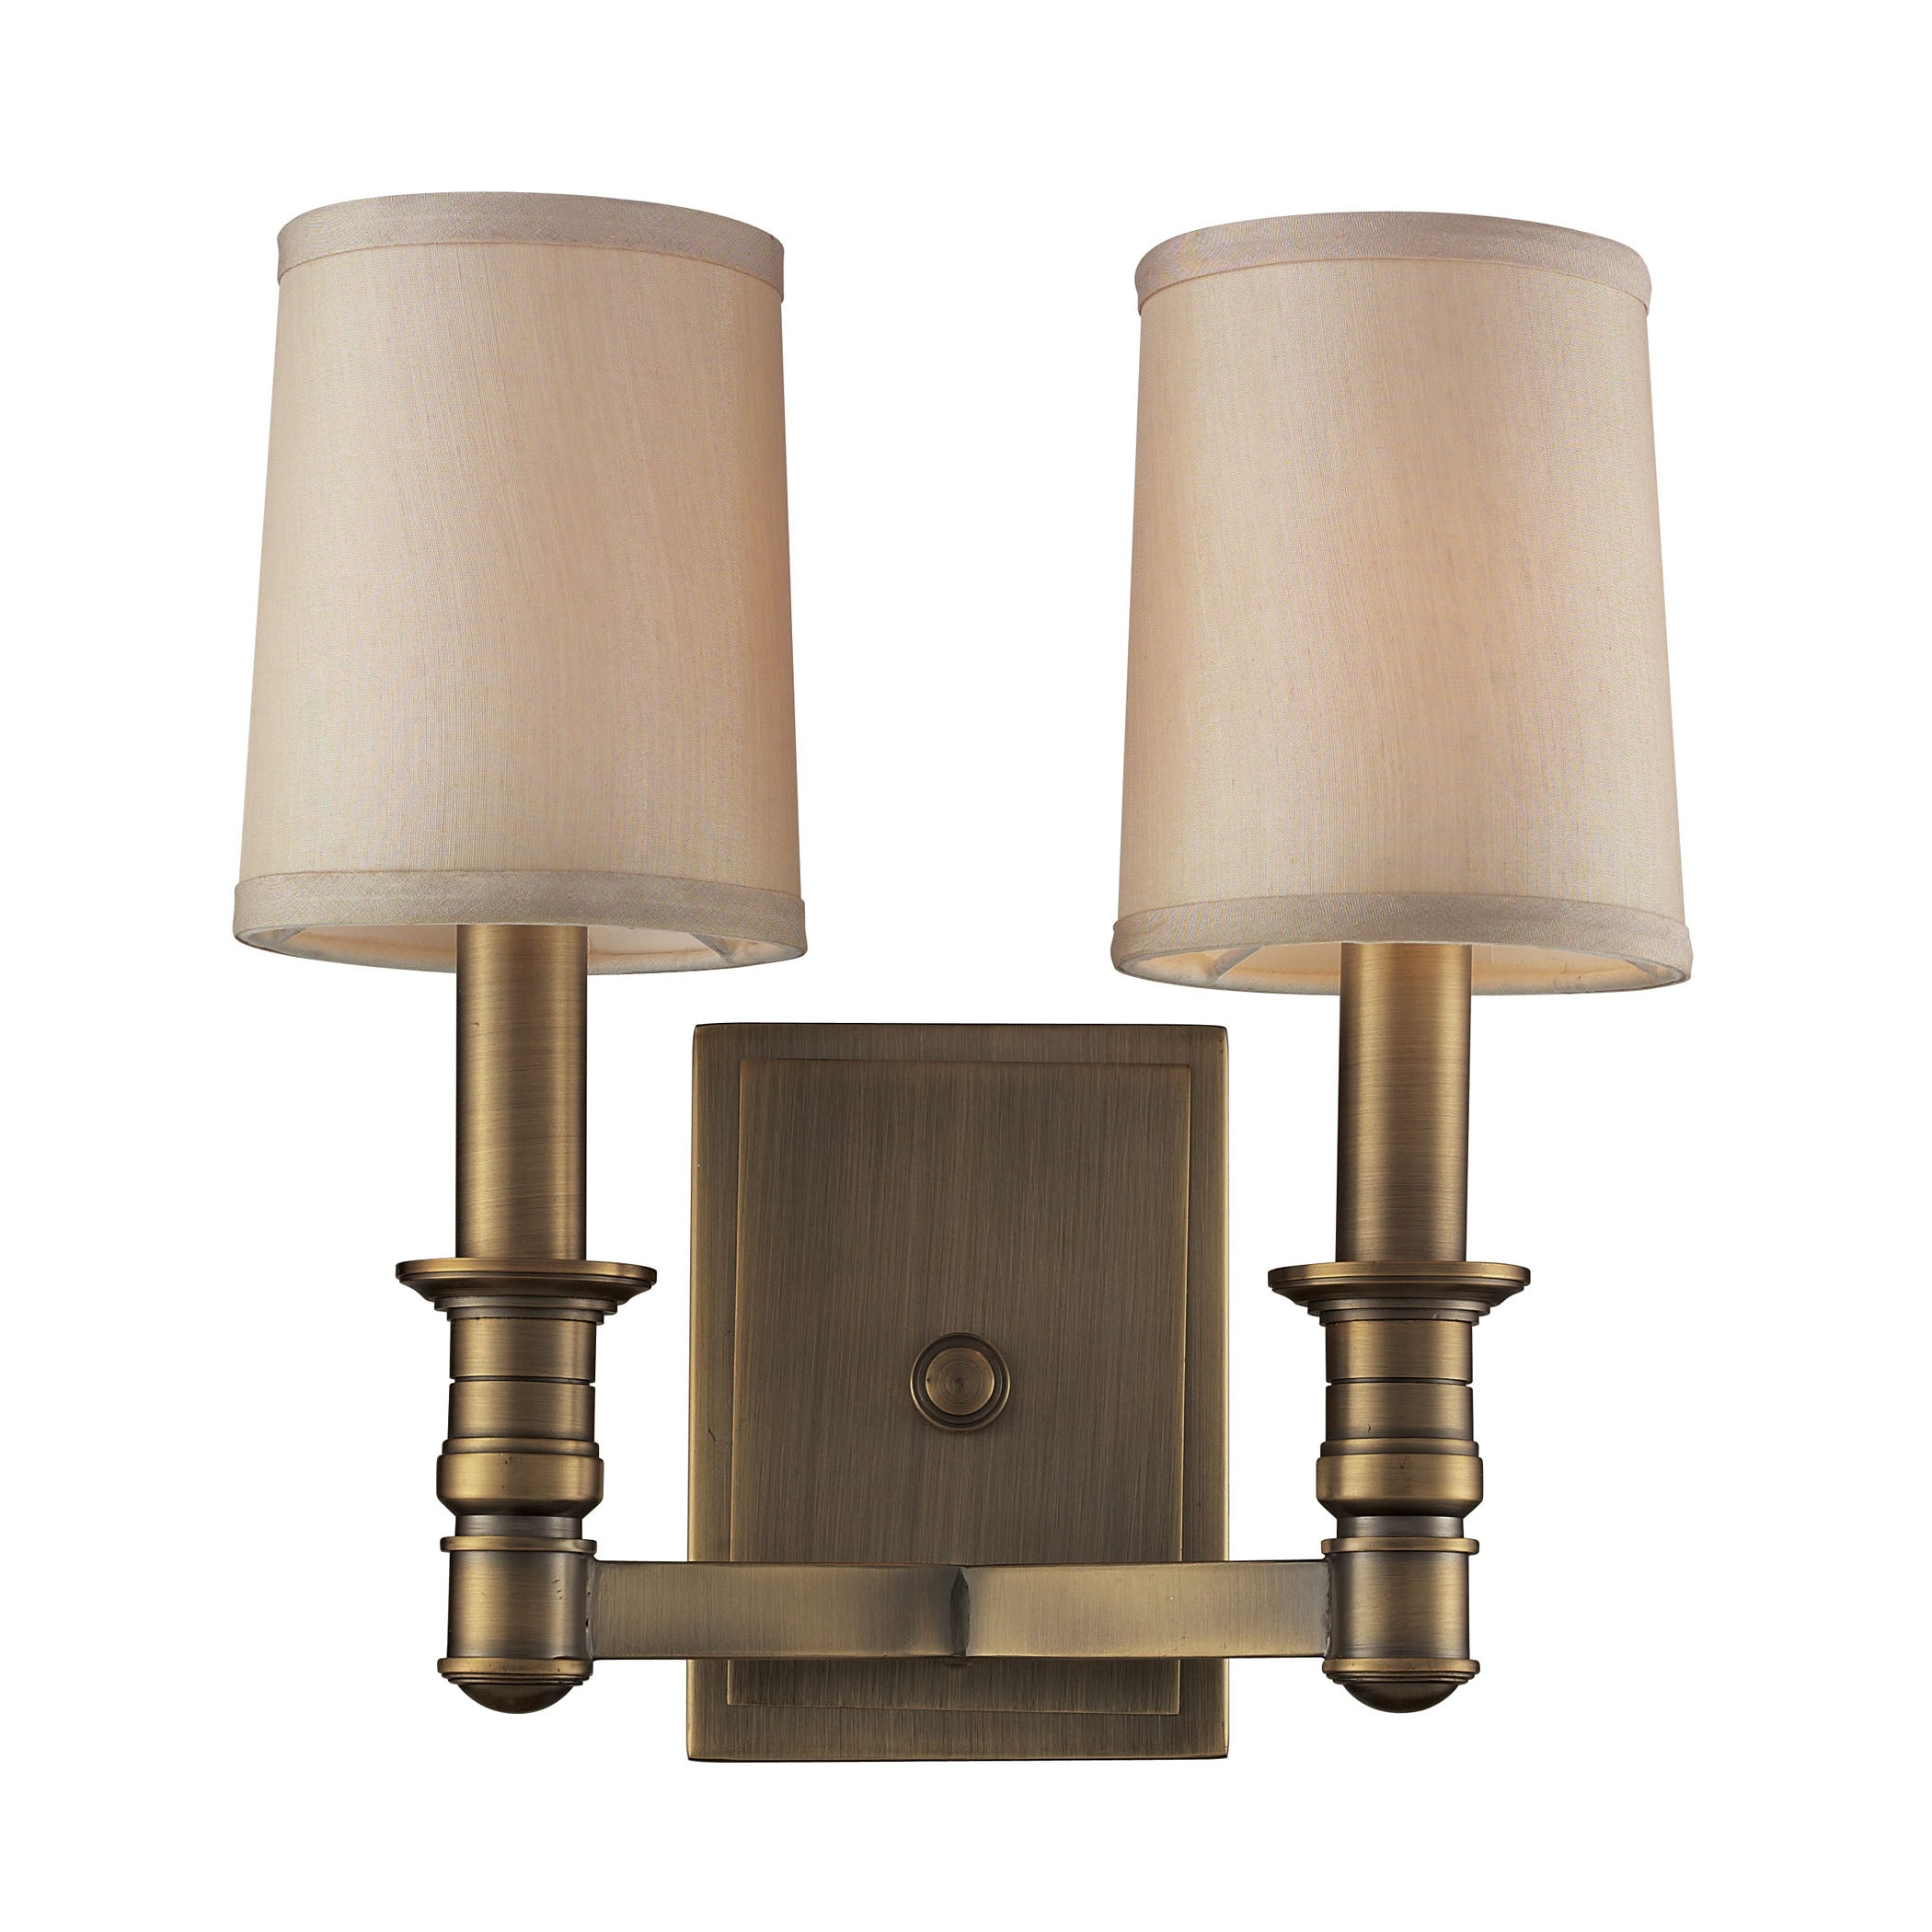 Baxter 2 Light Wall Sconce In Brushed Antique Brass